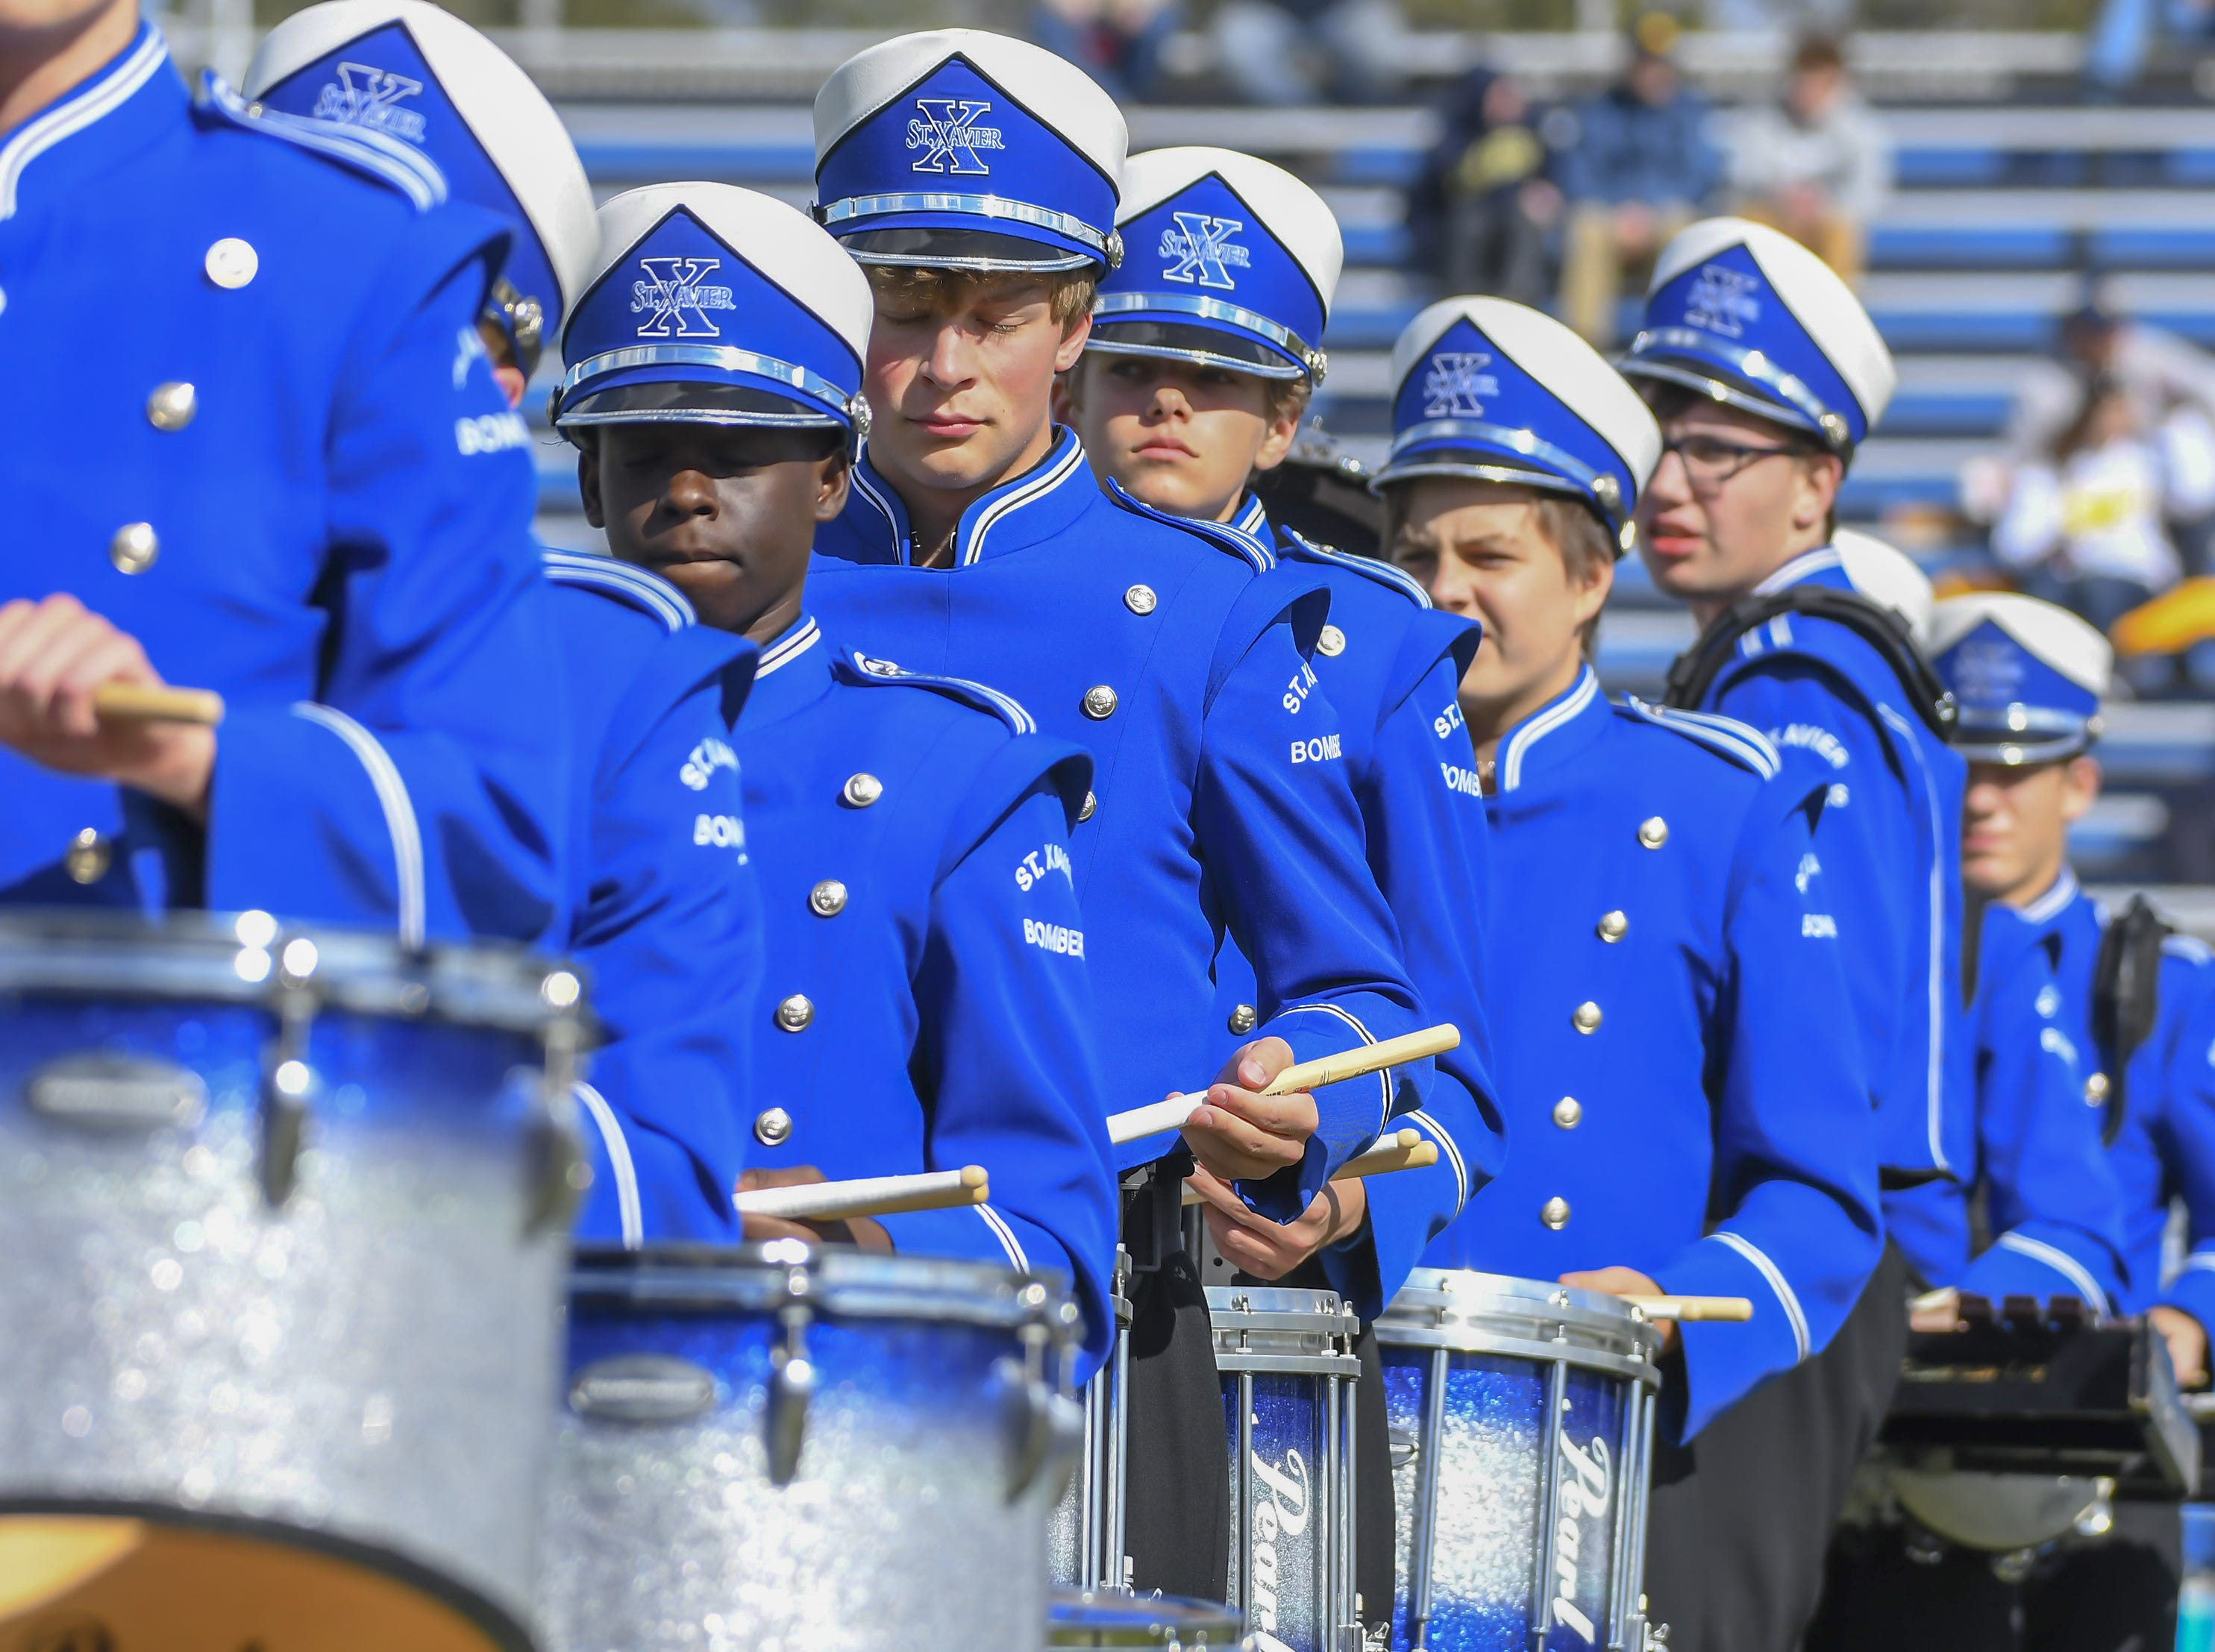 St. X marching band plays before the game against St. Ignatius at St. Xavier High School, Saturday, October, 20 2018